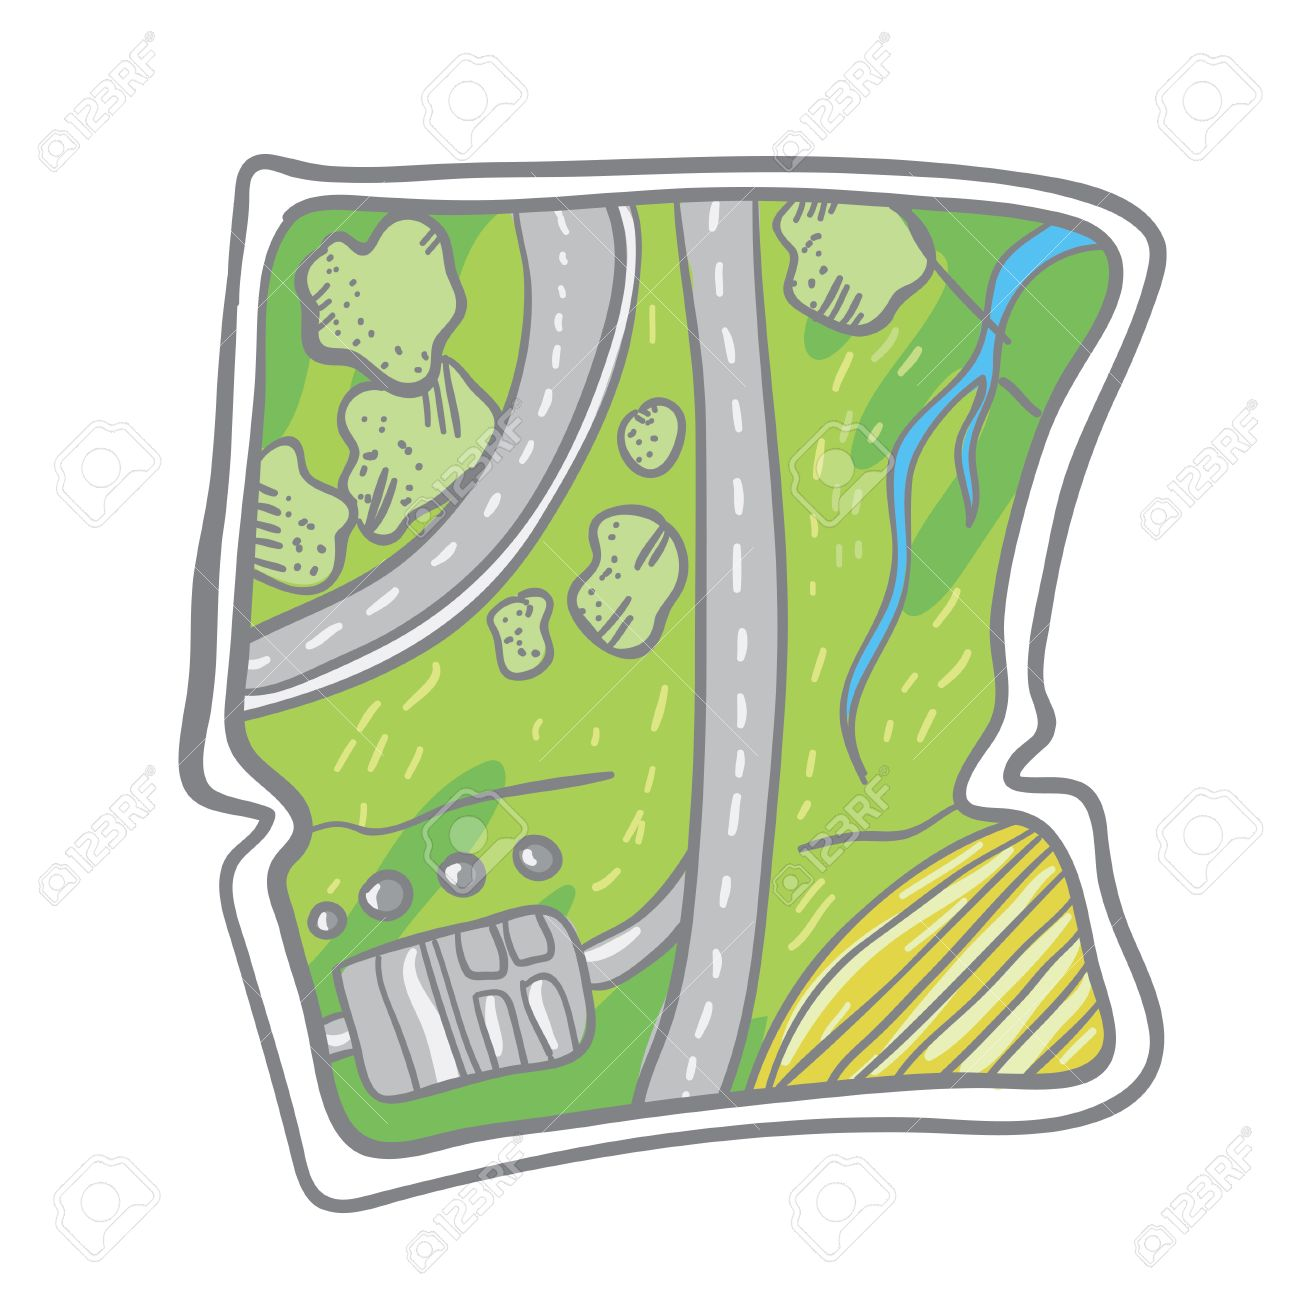 Map clip art simple.